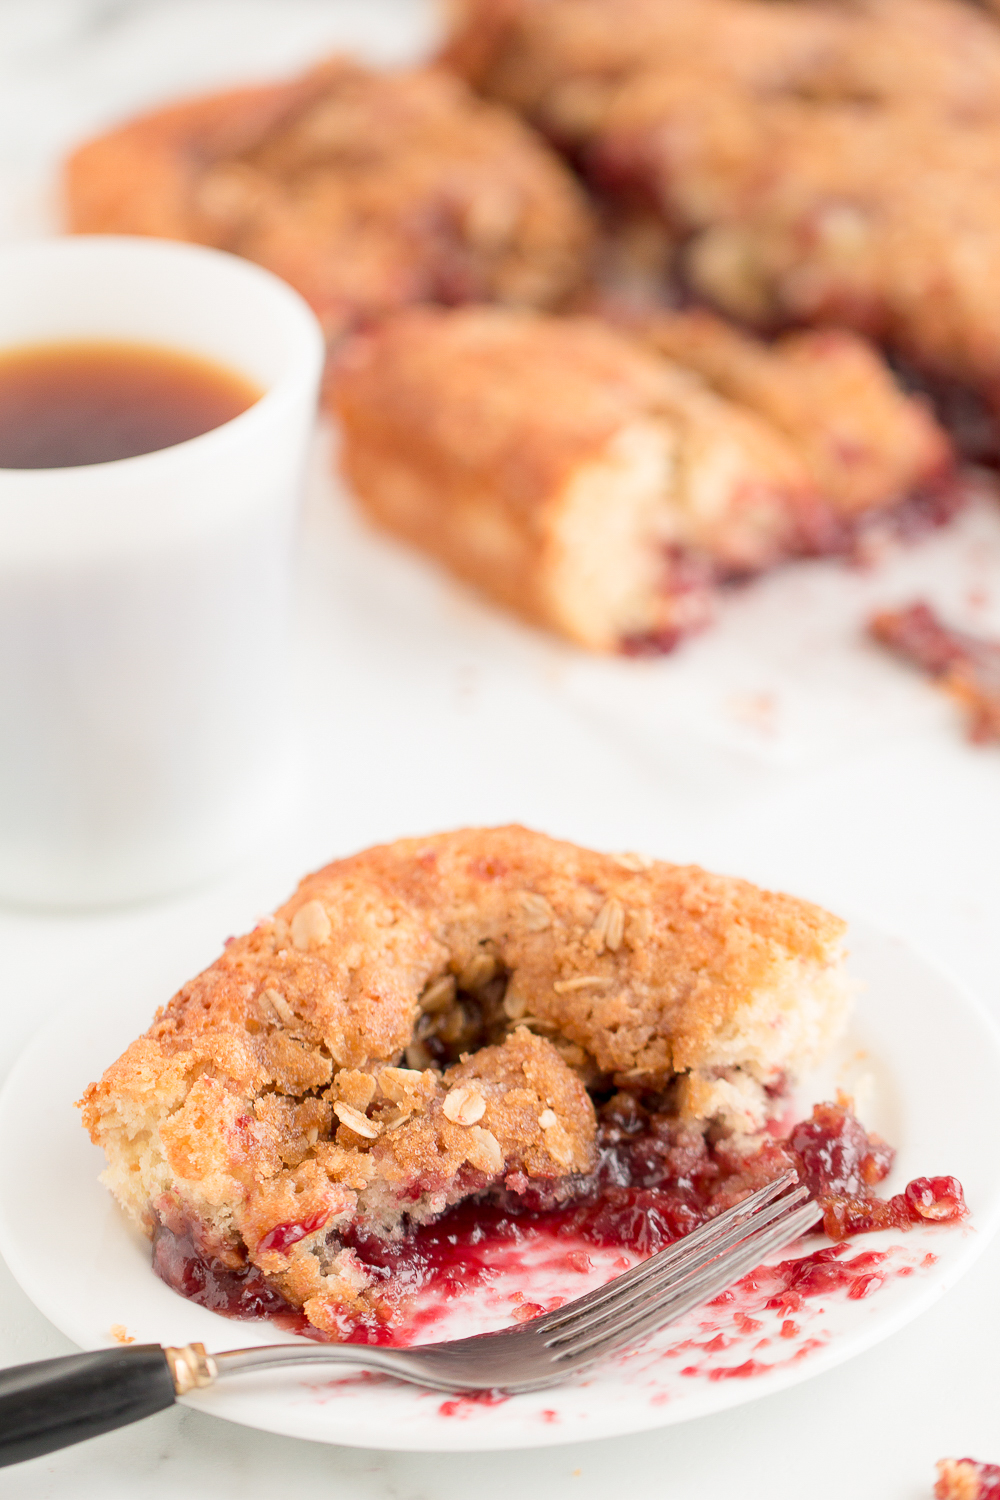 This Raspberry Streusel Coffee Cake is a delicious breakfast treat!  A yummy batter swirled with raspberry jam and topped with a crunchy oat and sugar topping.